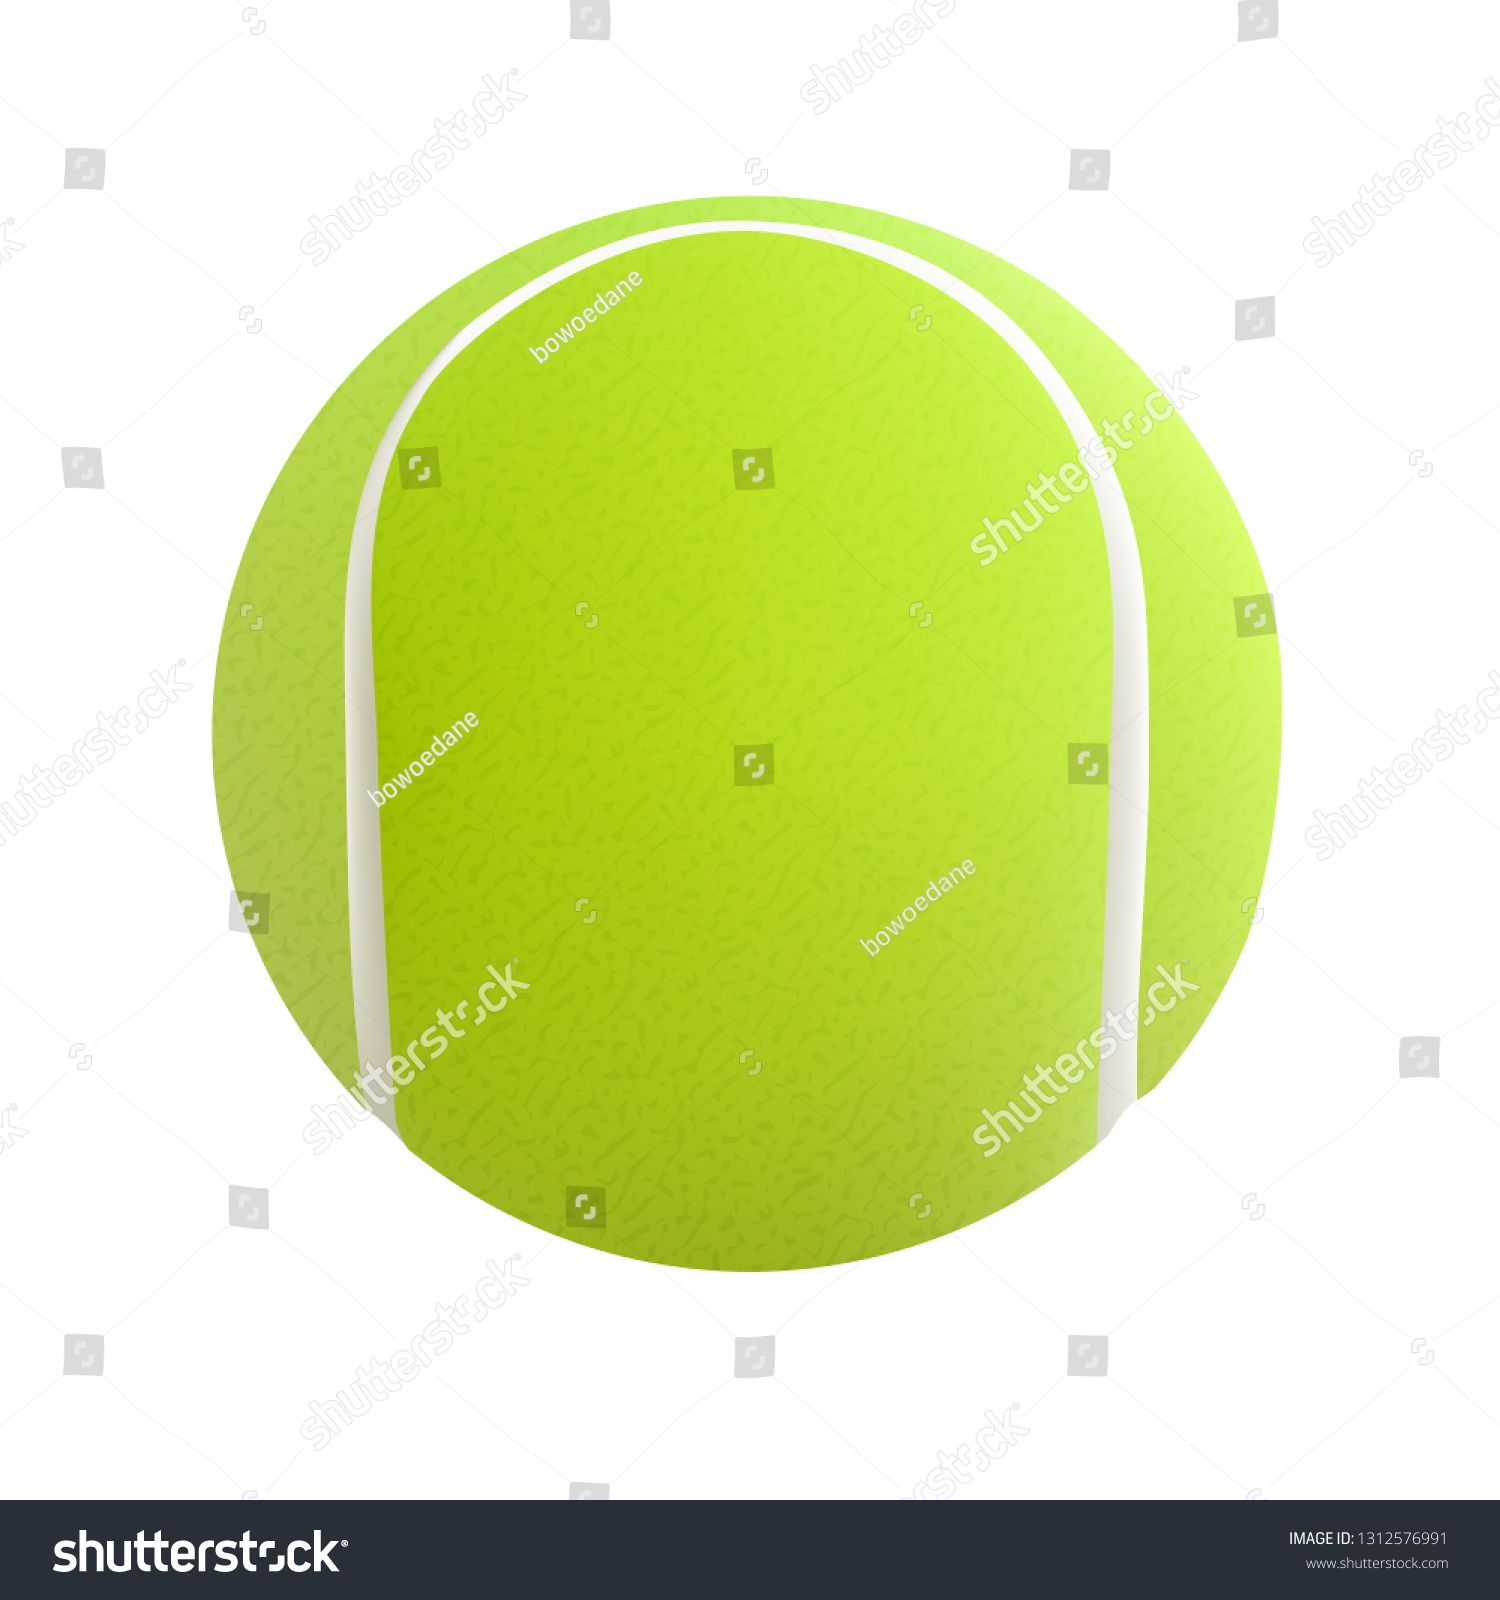 Vector Tennis Ball Green Isolated On White Background Ad Affiliate Ball Tennis Vector Green Tennis Ball White Background Ball